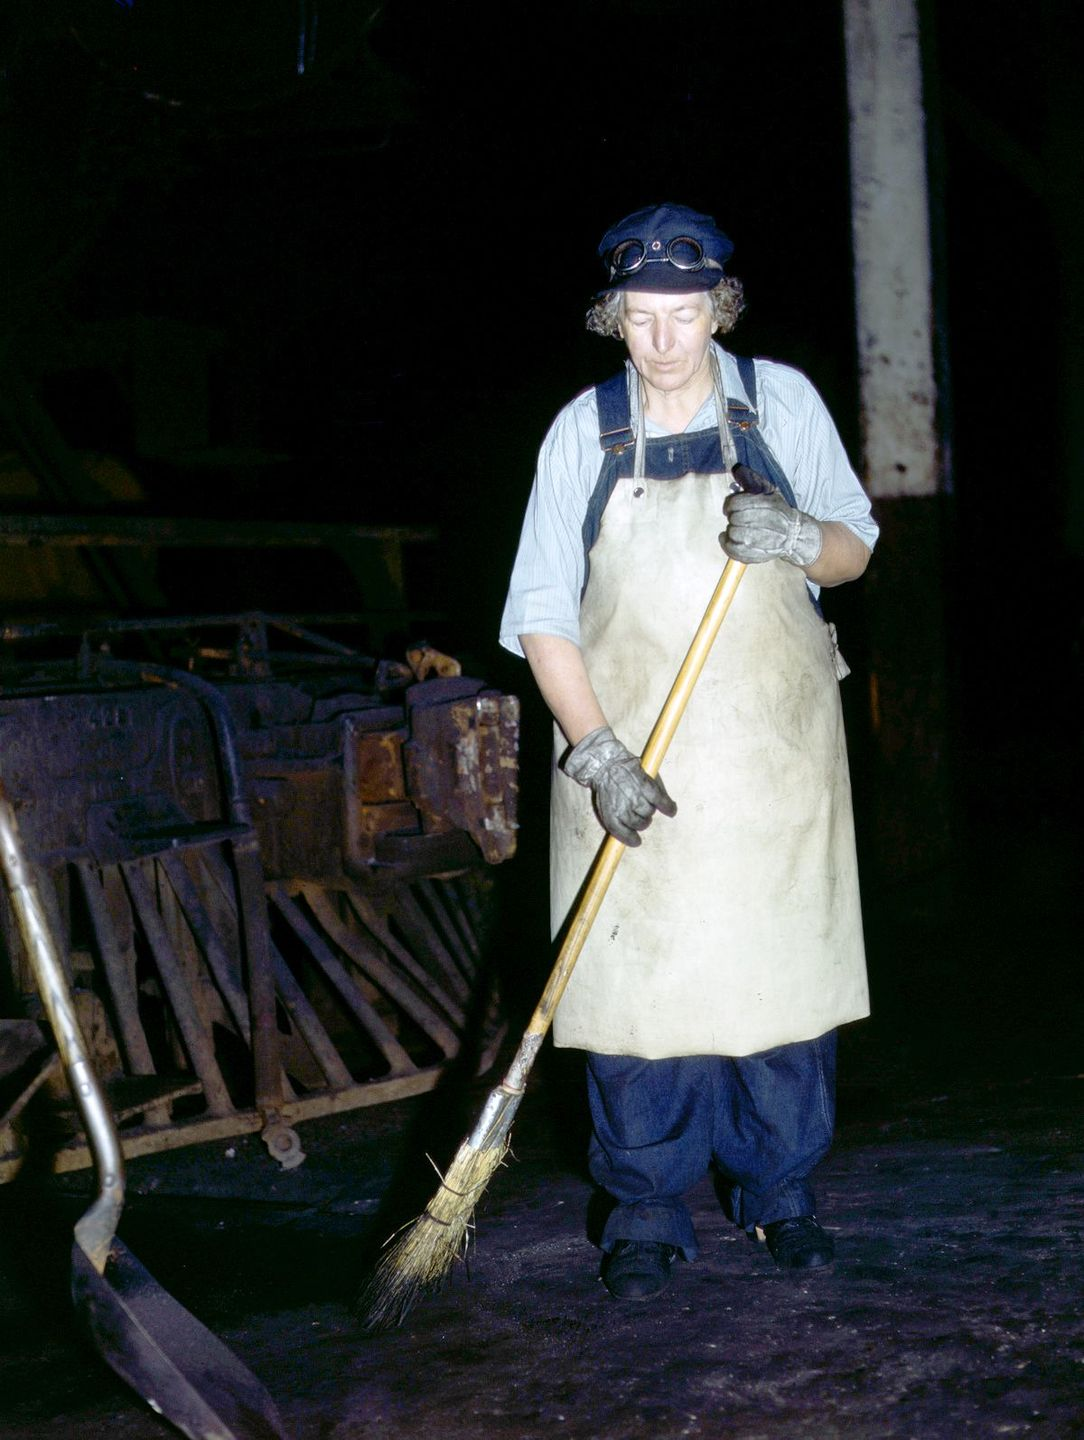 Mrs. Elibia Siematter, a sweeper at the roundhouse.